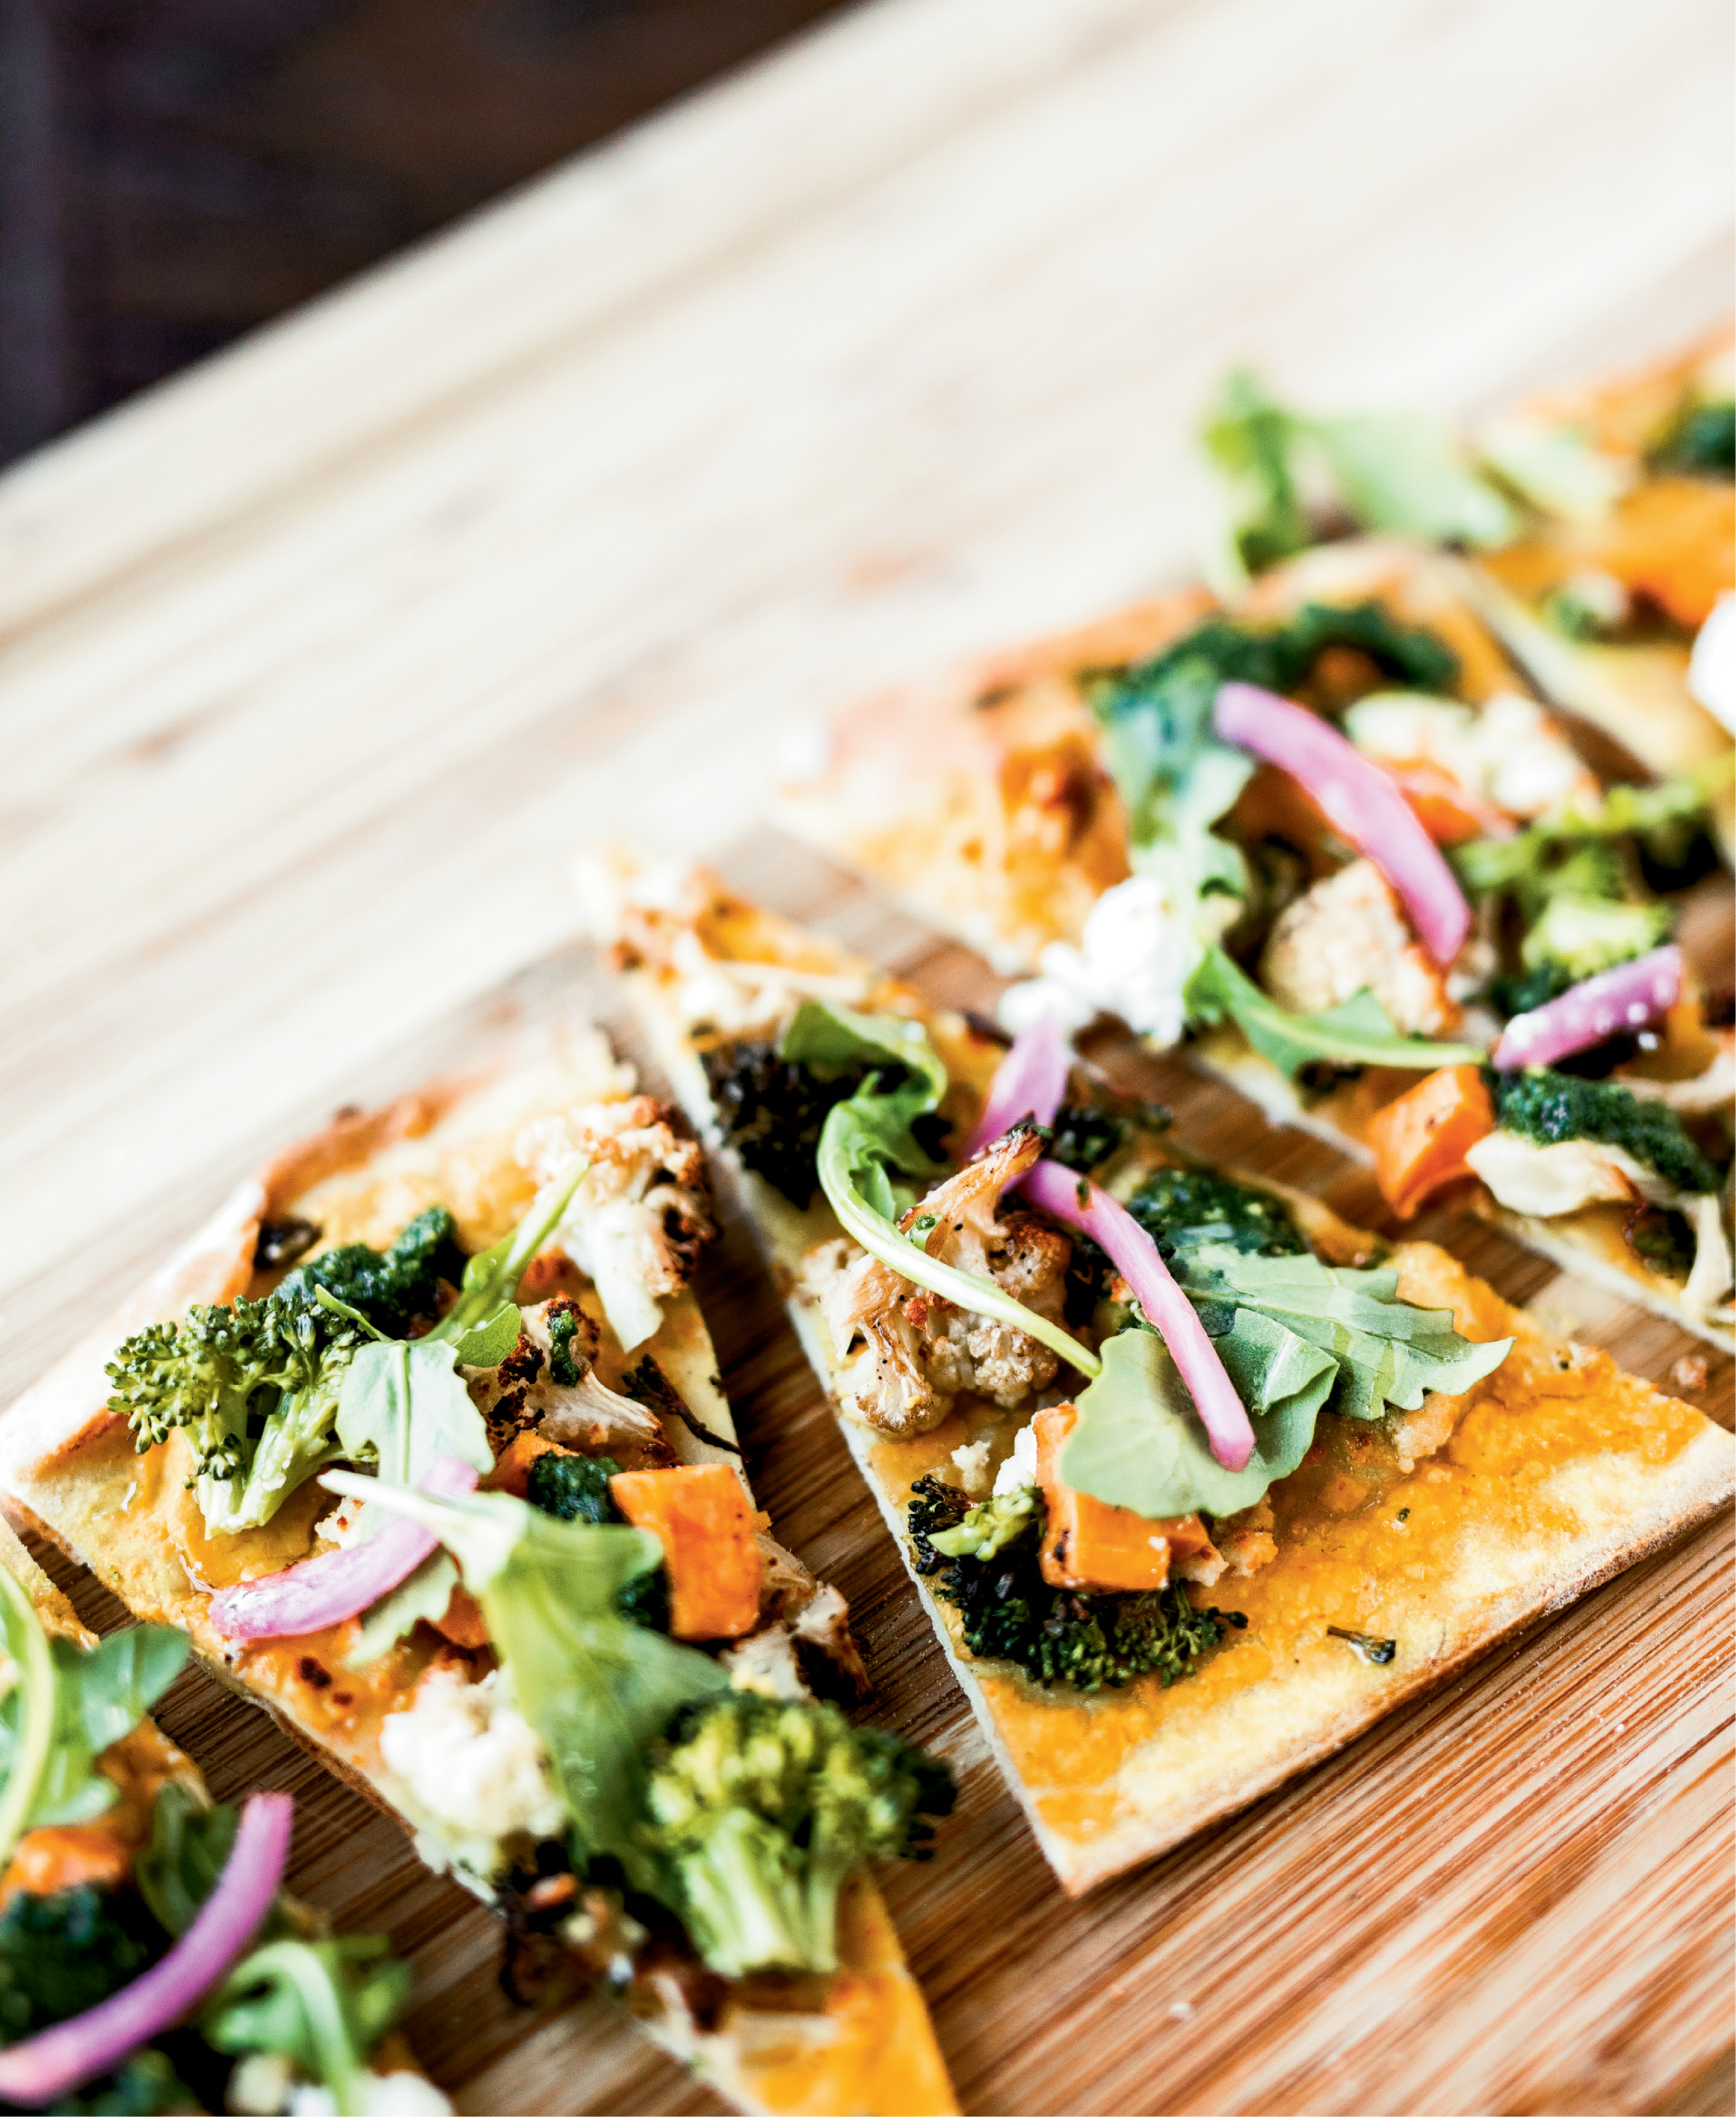 Fresh-picked produce was the norm when executive chef Brannon Florie visited his grandfather's Mount Pleasant farm growing up. Now, he uses local sweet potatoes, broccoli, cauliflower, and other vegetables to add flavor to flatbread at The Granary.